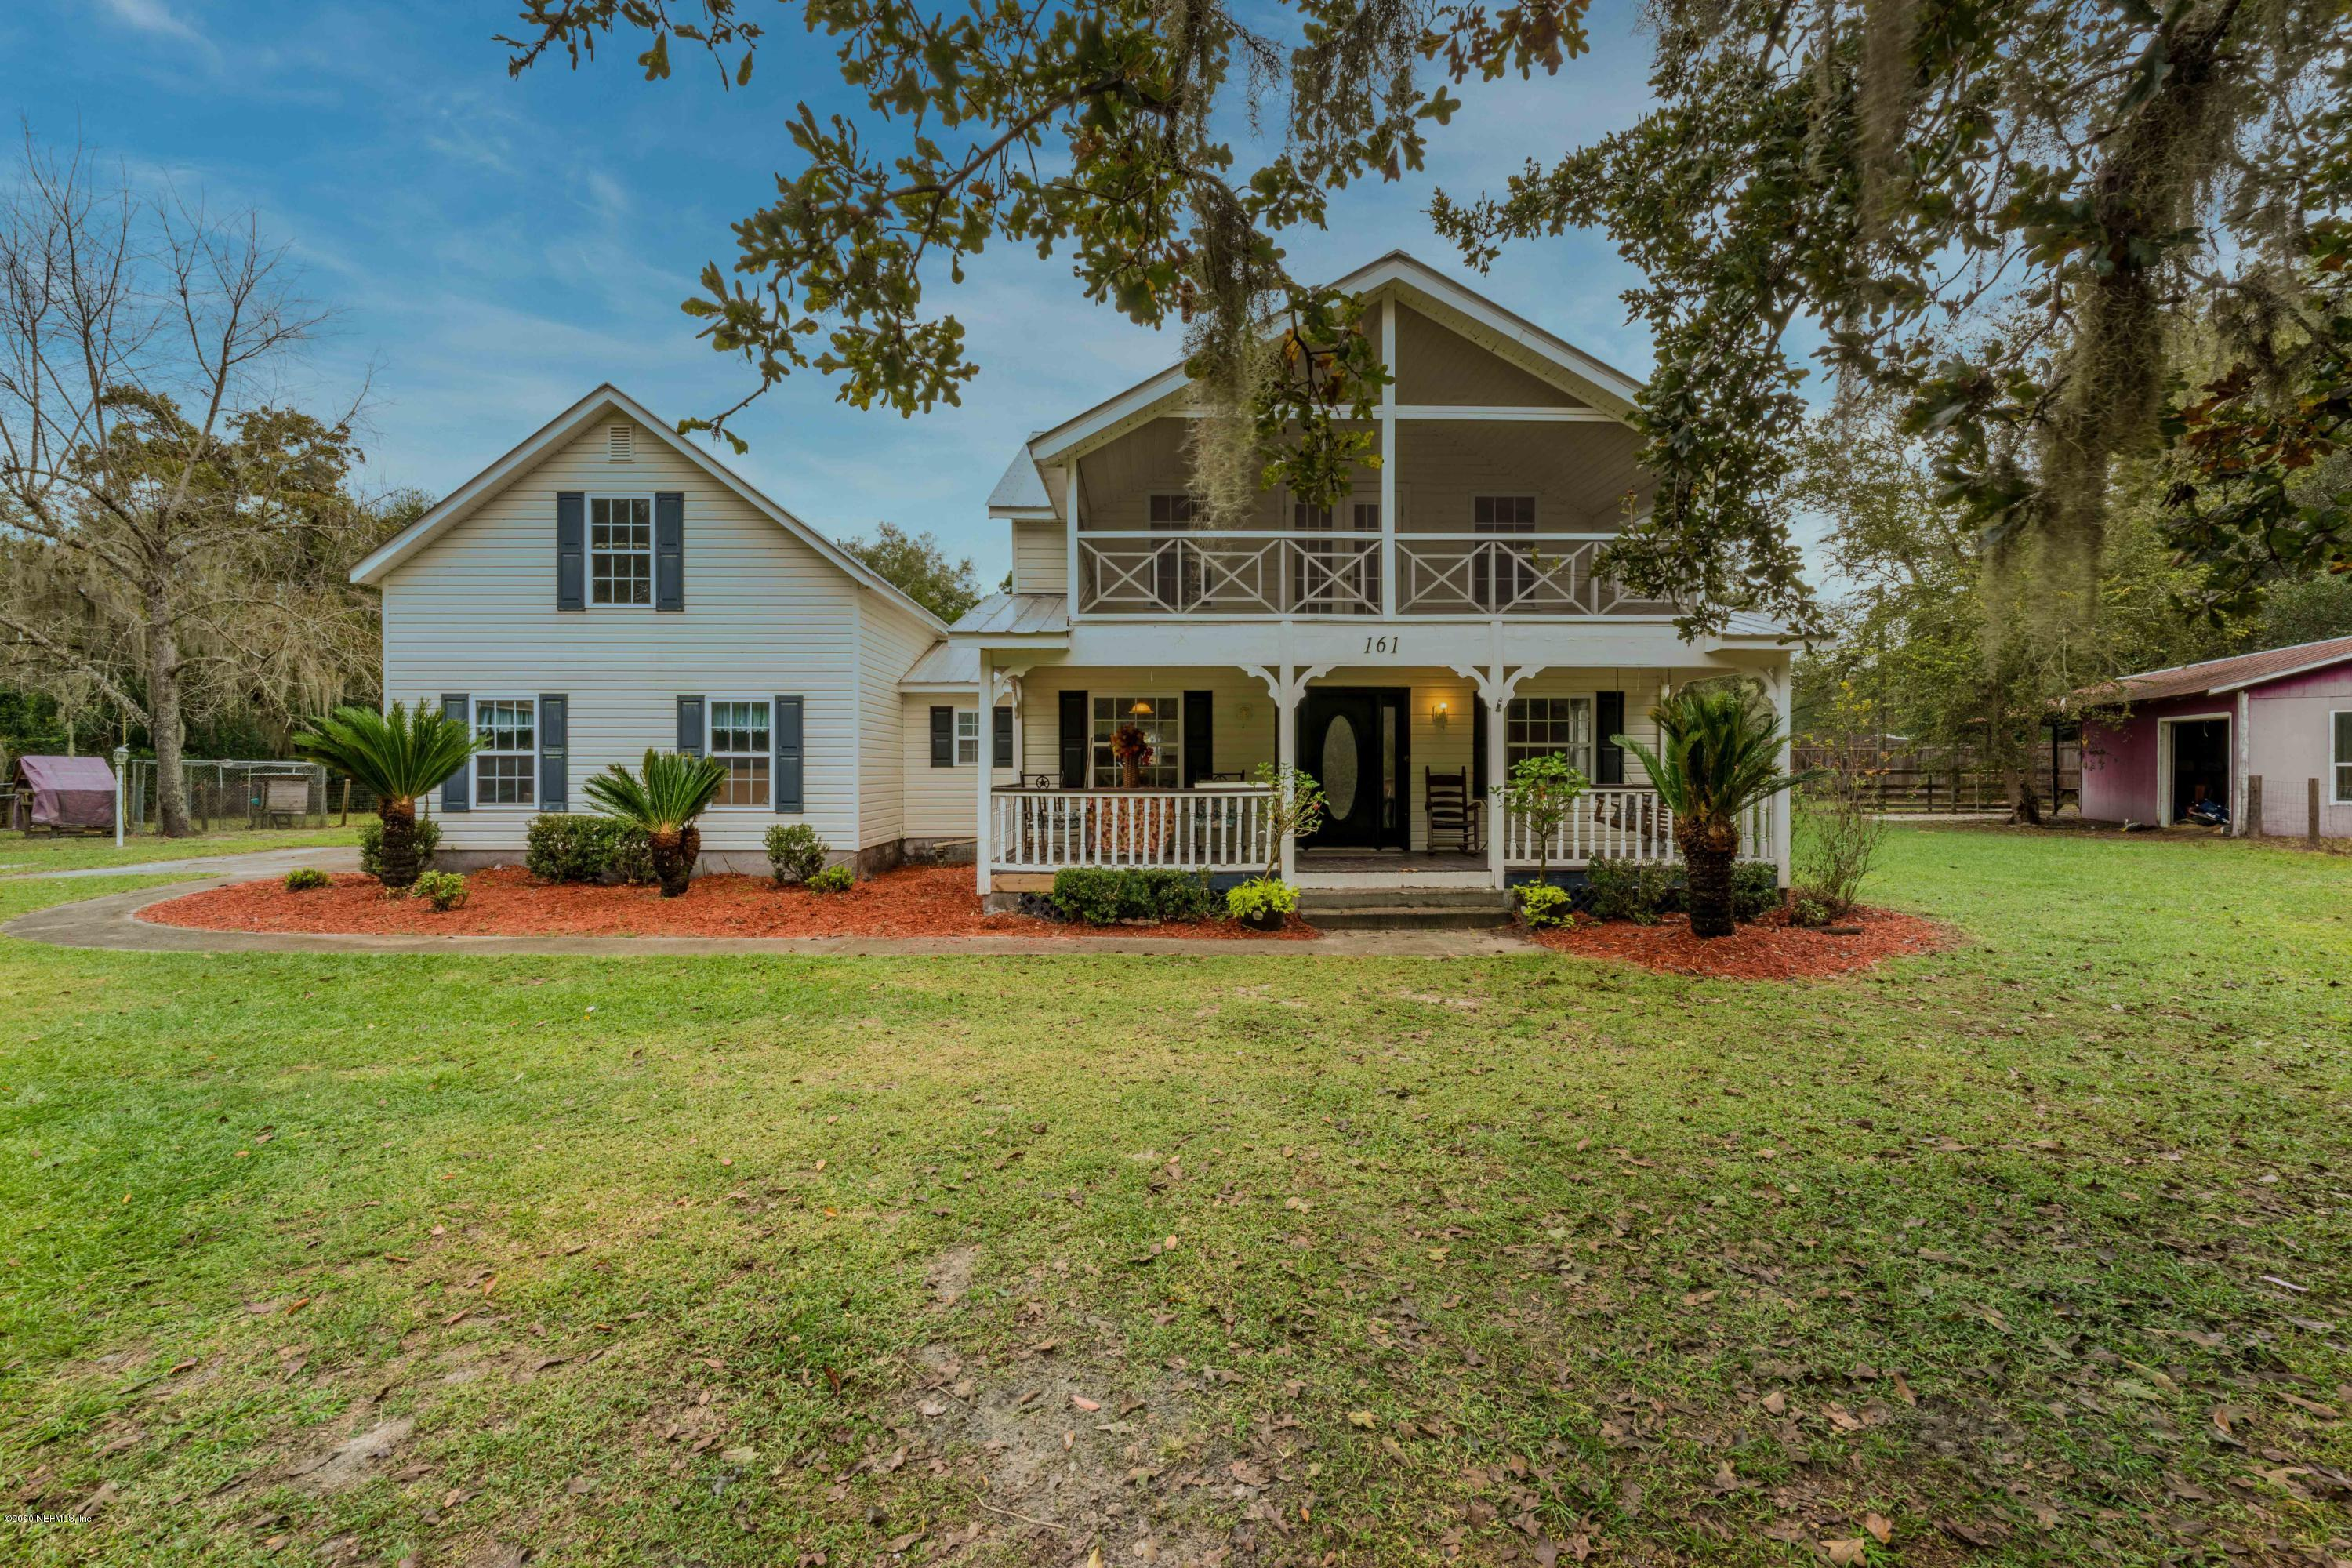 Details for 161 Short Trl, GREEN COVE SPRINGS, FL 32043